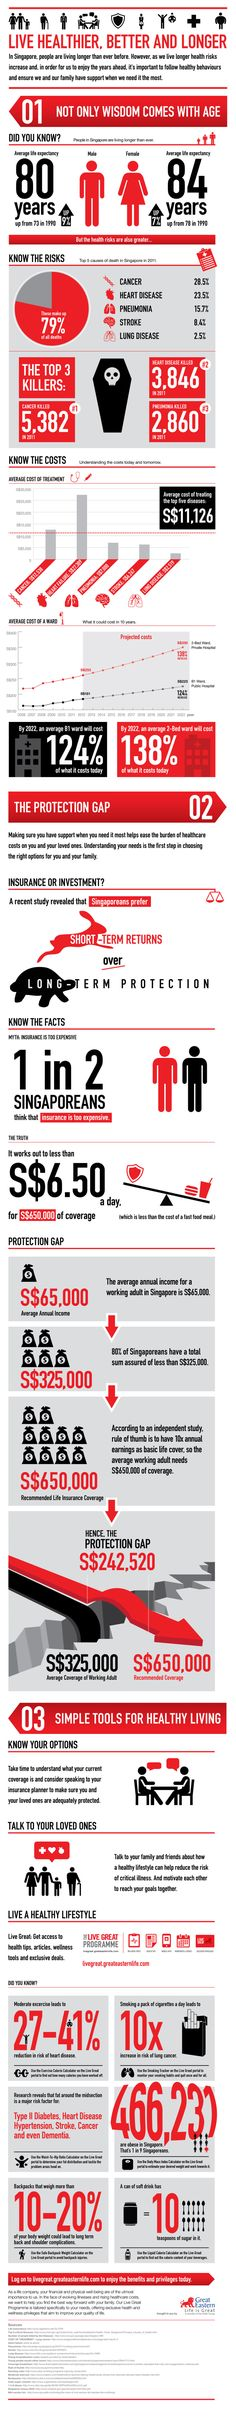 The Singapore Protection Gap, information design, infographics, healthcare